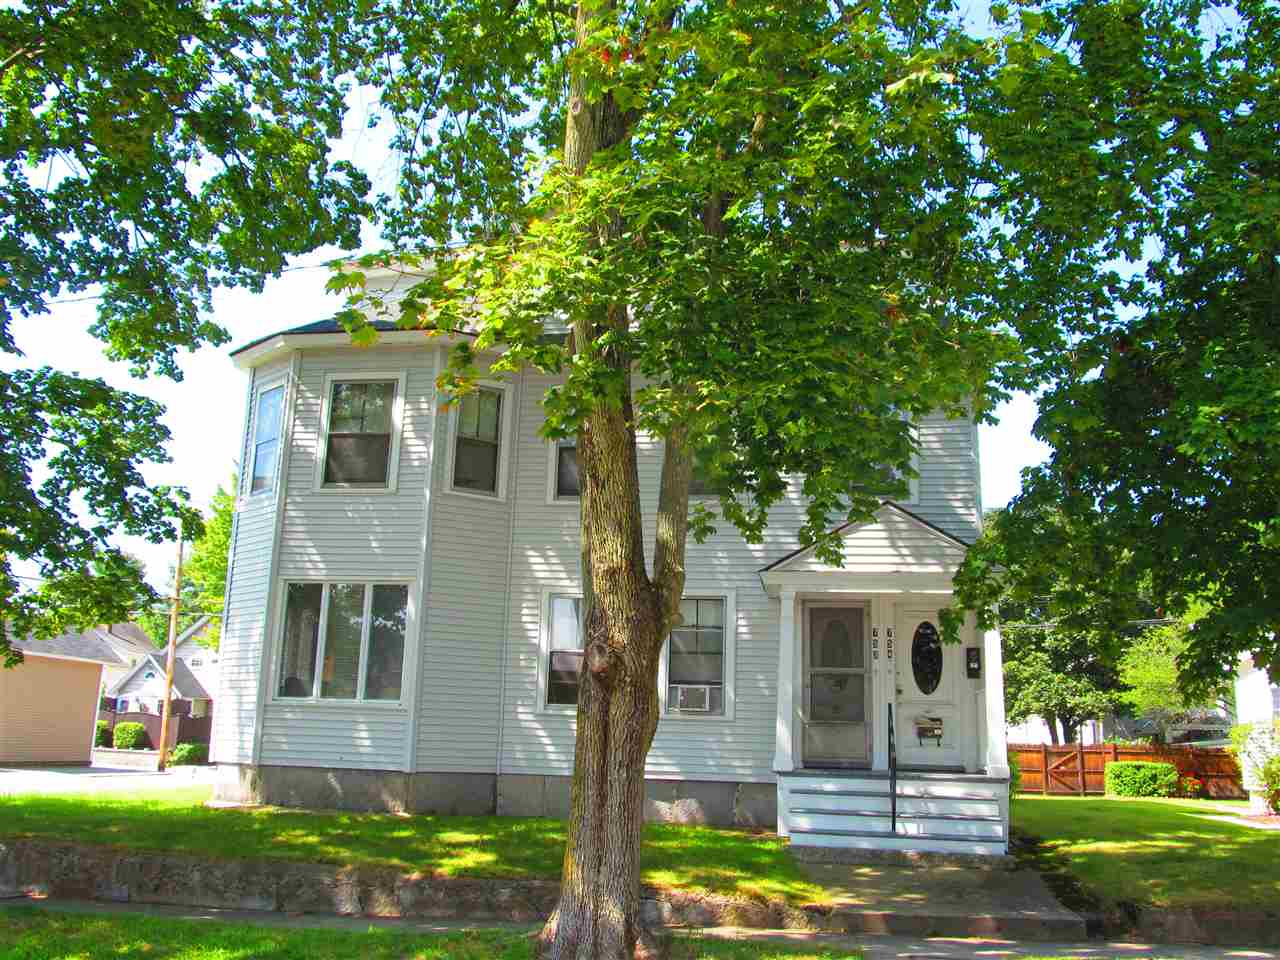 image of Manchester NH  4 Unit Multi Family | sq.ft. 3407